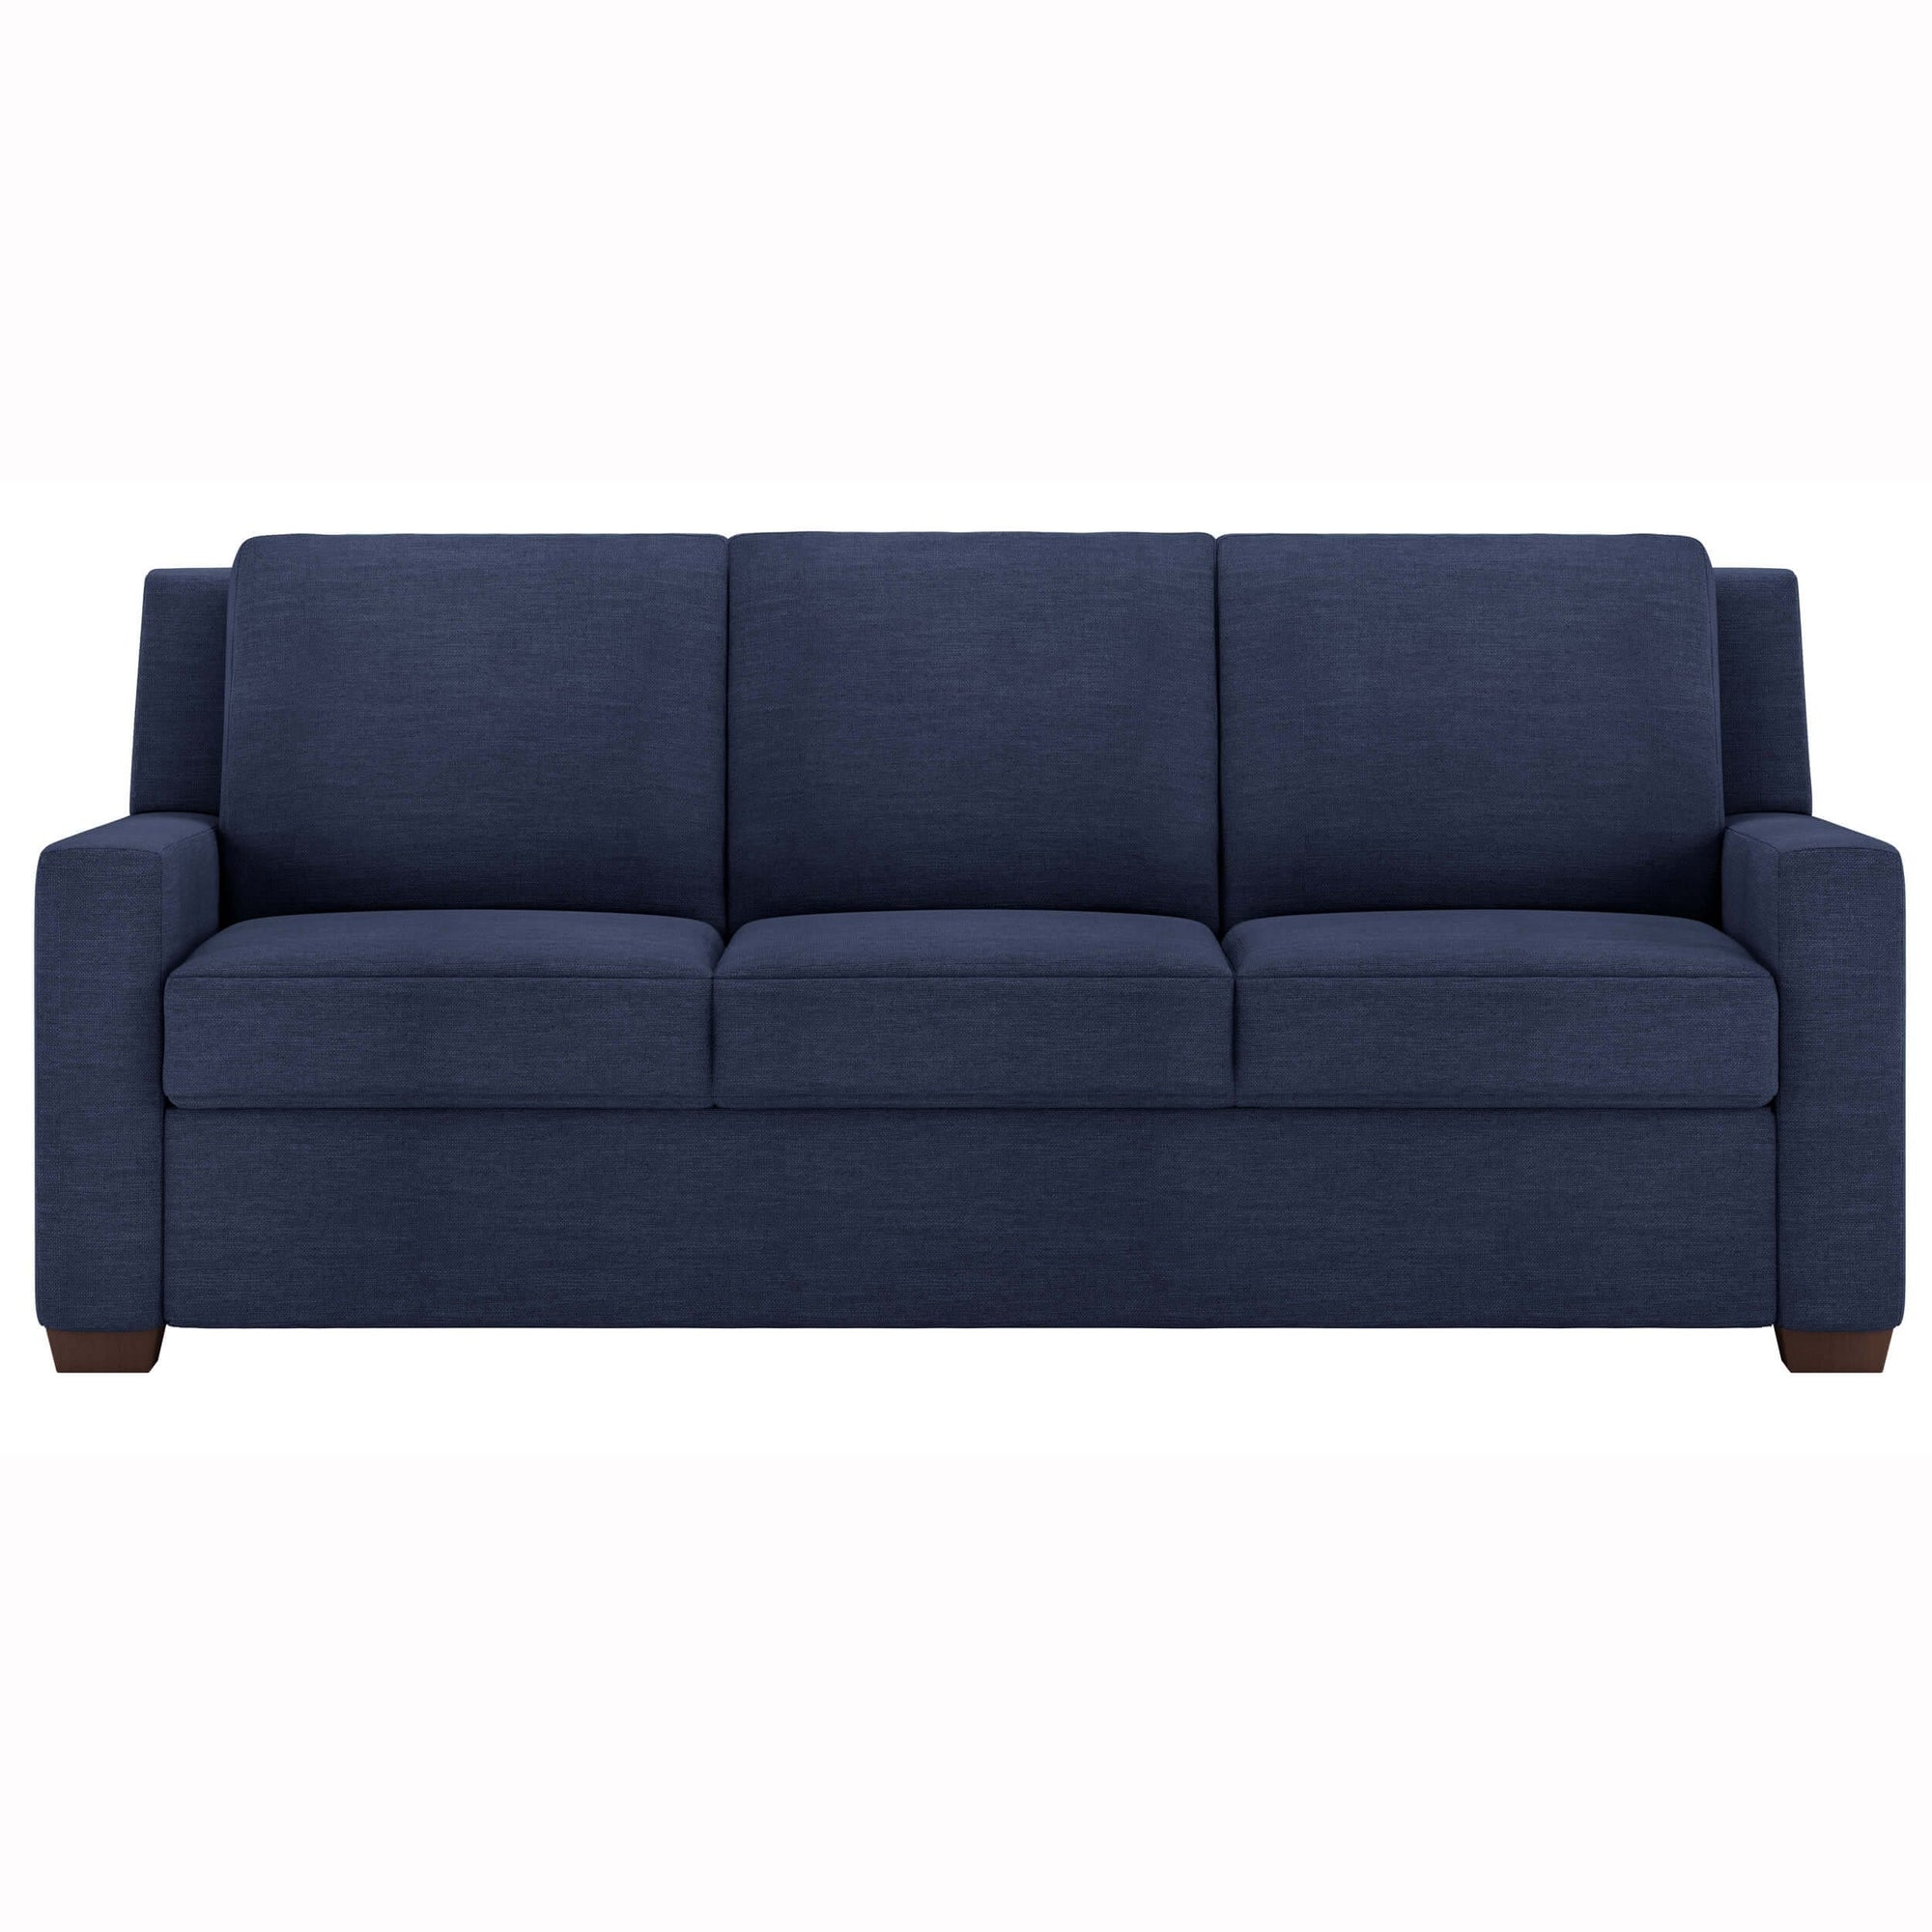 - American Leather Lyons Queen Sleeper Sofa, Nuance Indigo – High